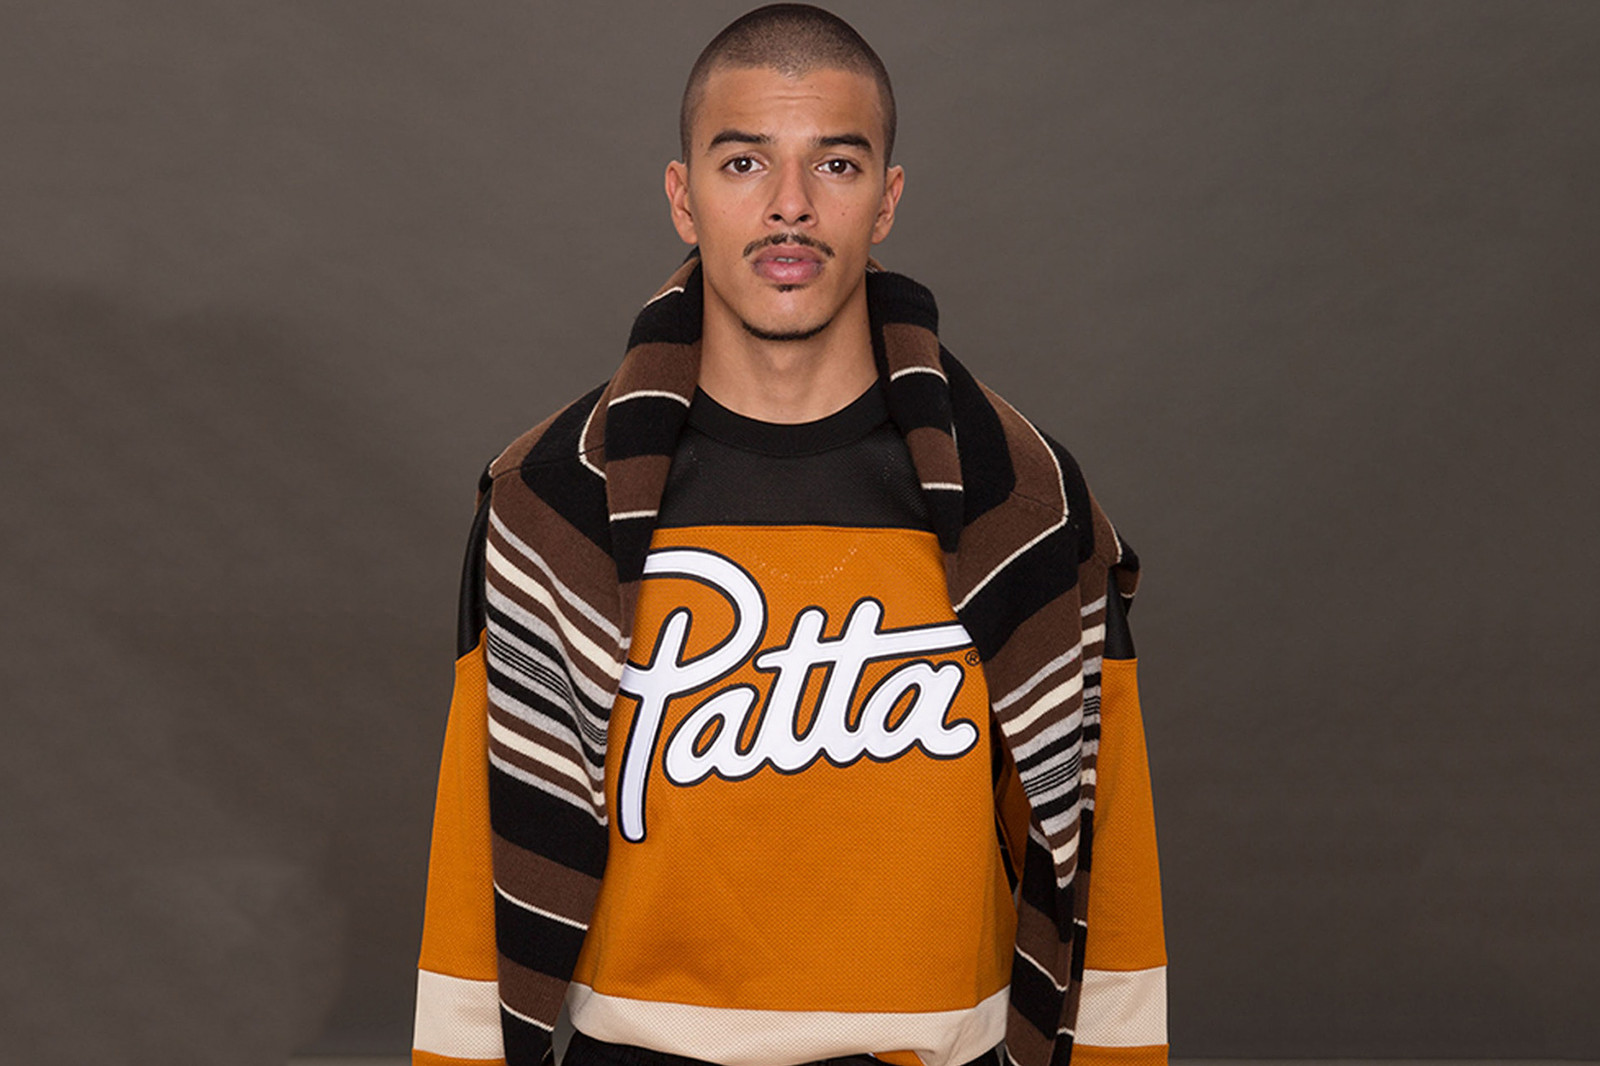 European Product Drops Including Thames, Patta, Raf Simons, 032c